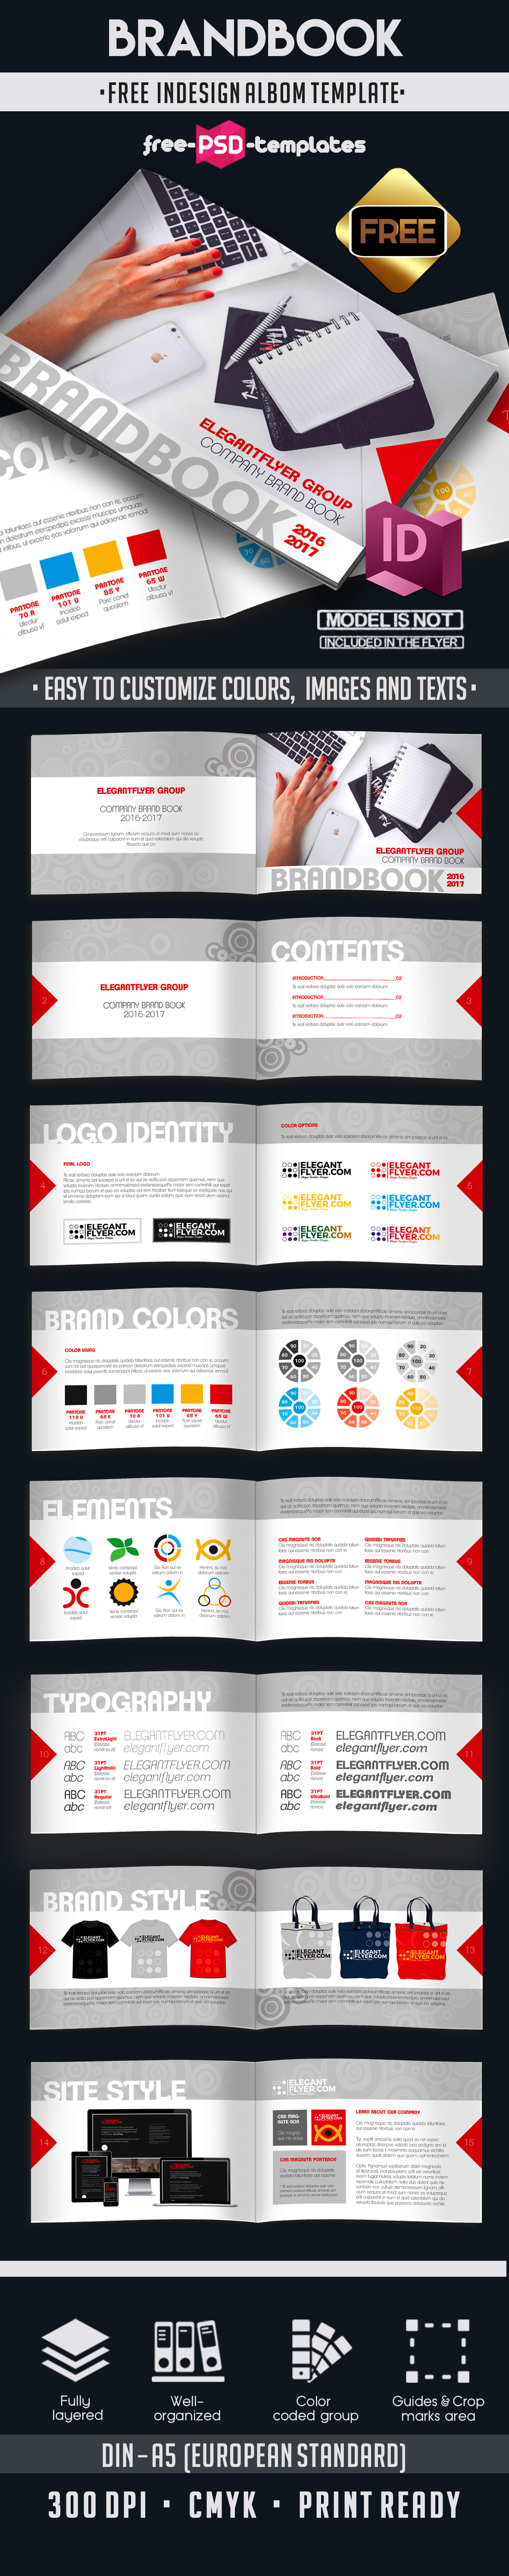 Free Brand Book 16 pages A5 | Free PSD Templates